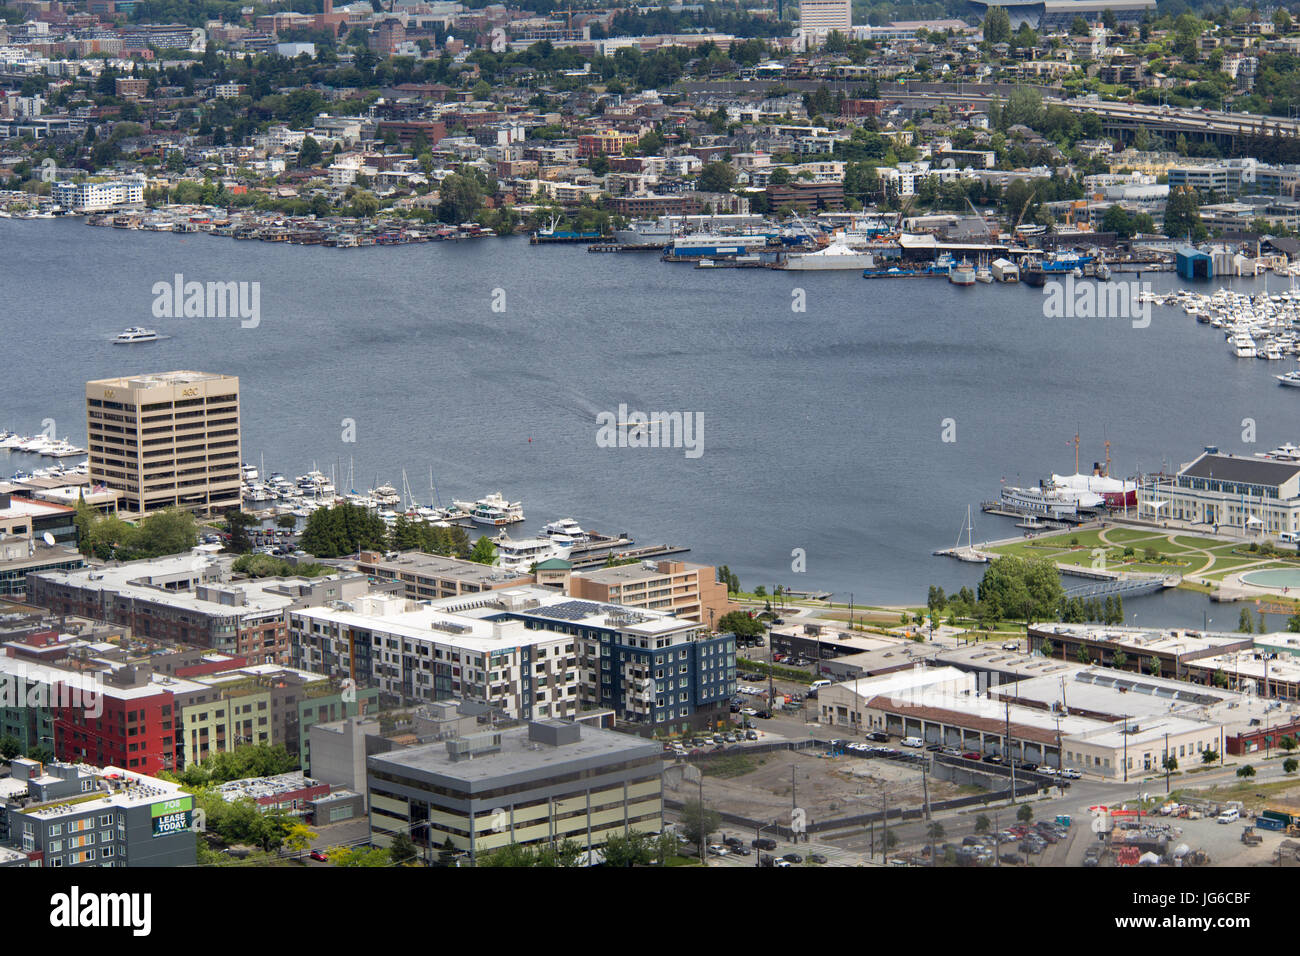 View on Lake Union from the Space Needle in Seattle, Washington with a seaplane landing on the water - Stock Image